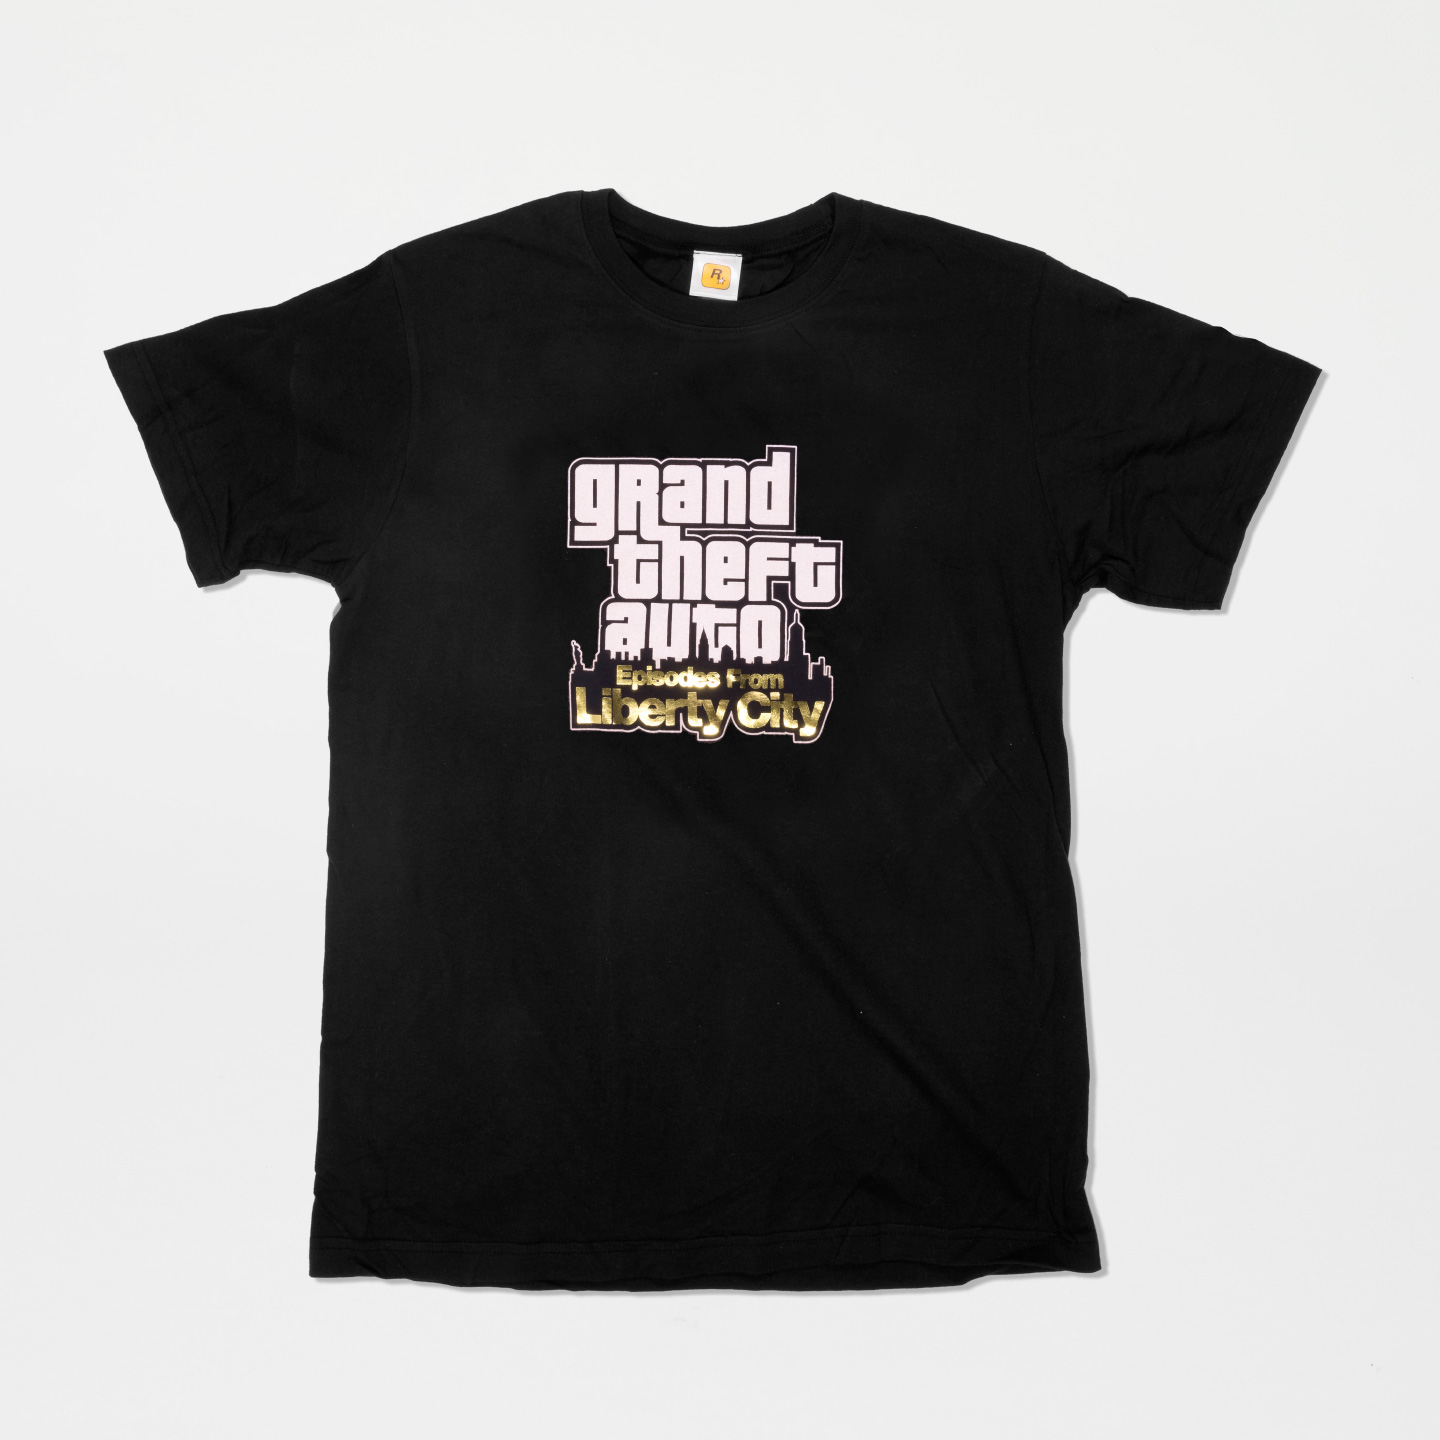 Grand Theft Auto: Episodes from Liberty City Tee